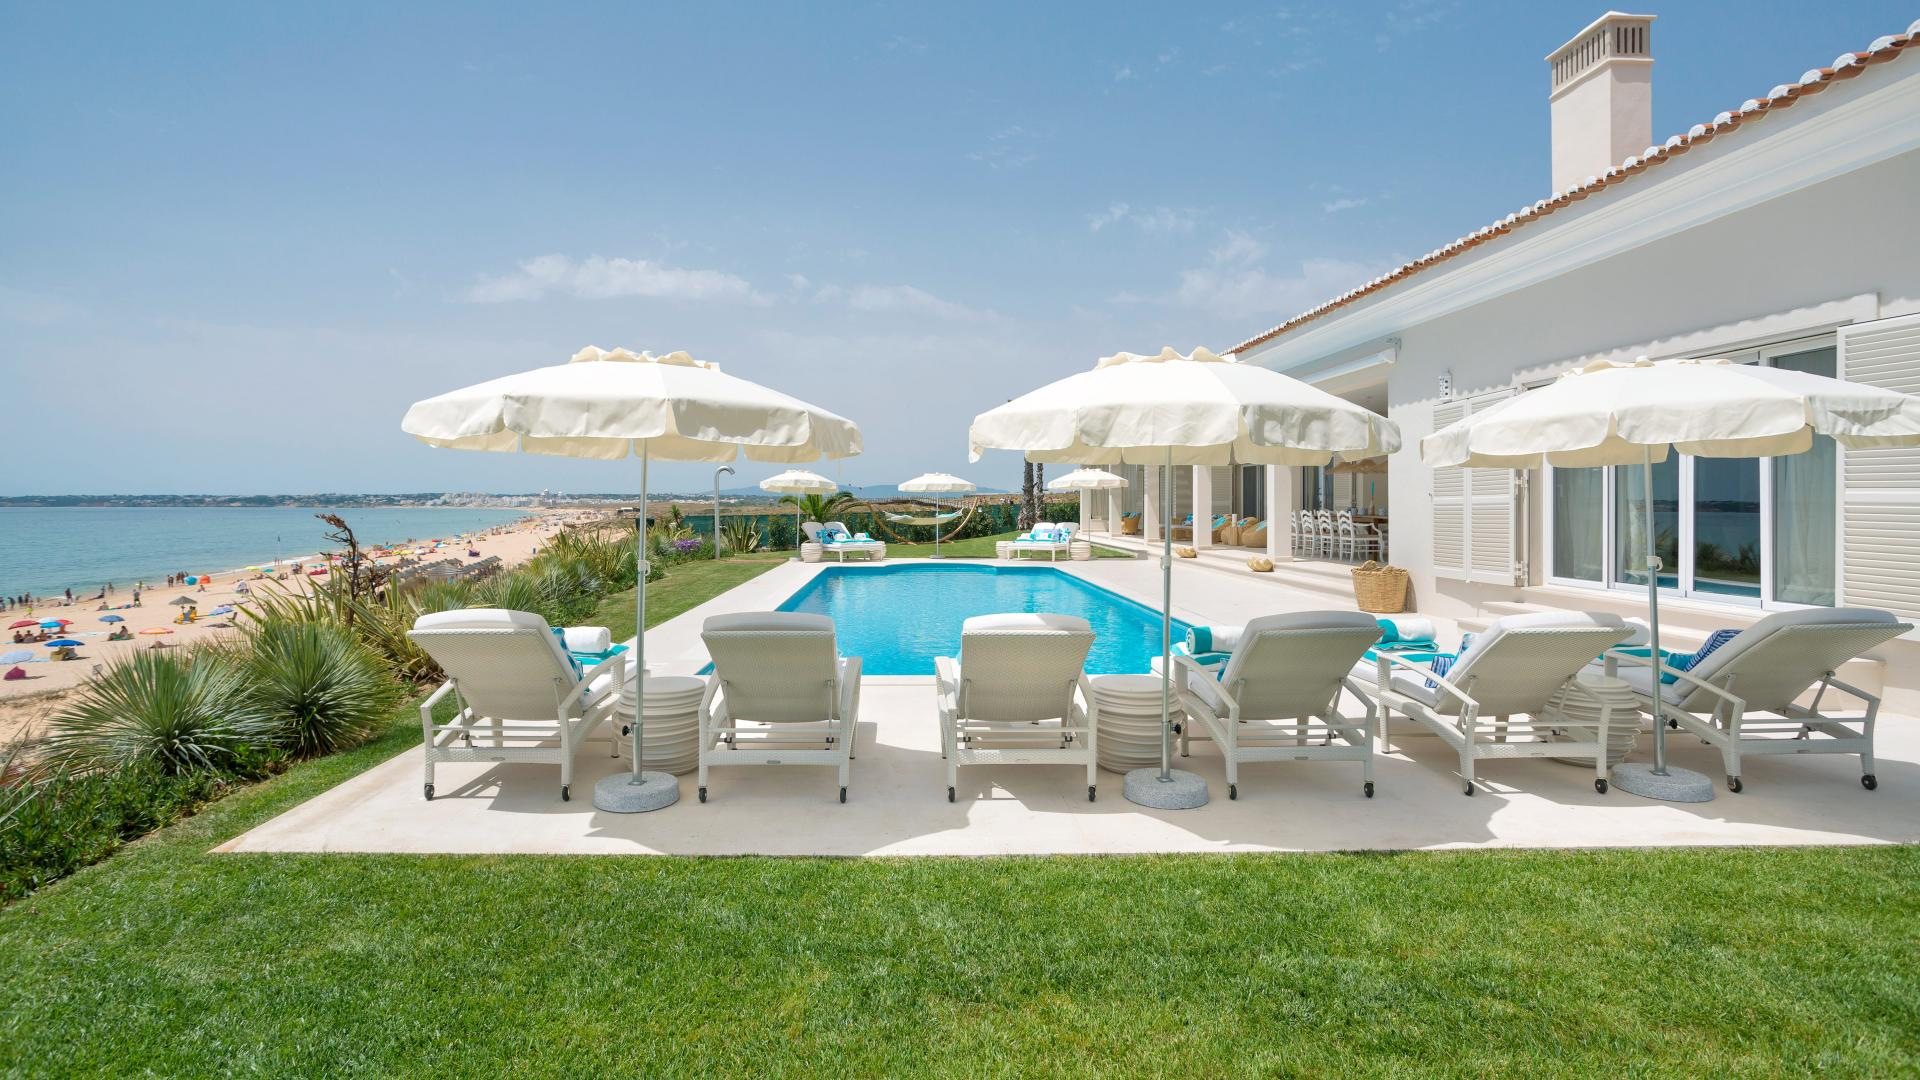 VILLA HIBISCUS BEACH HOUSE - luxury villas in the Algarve